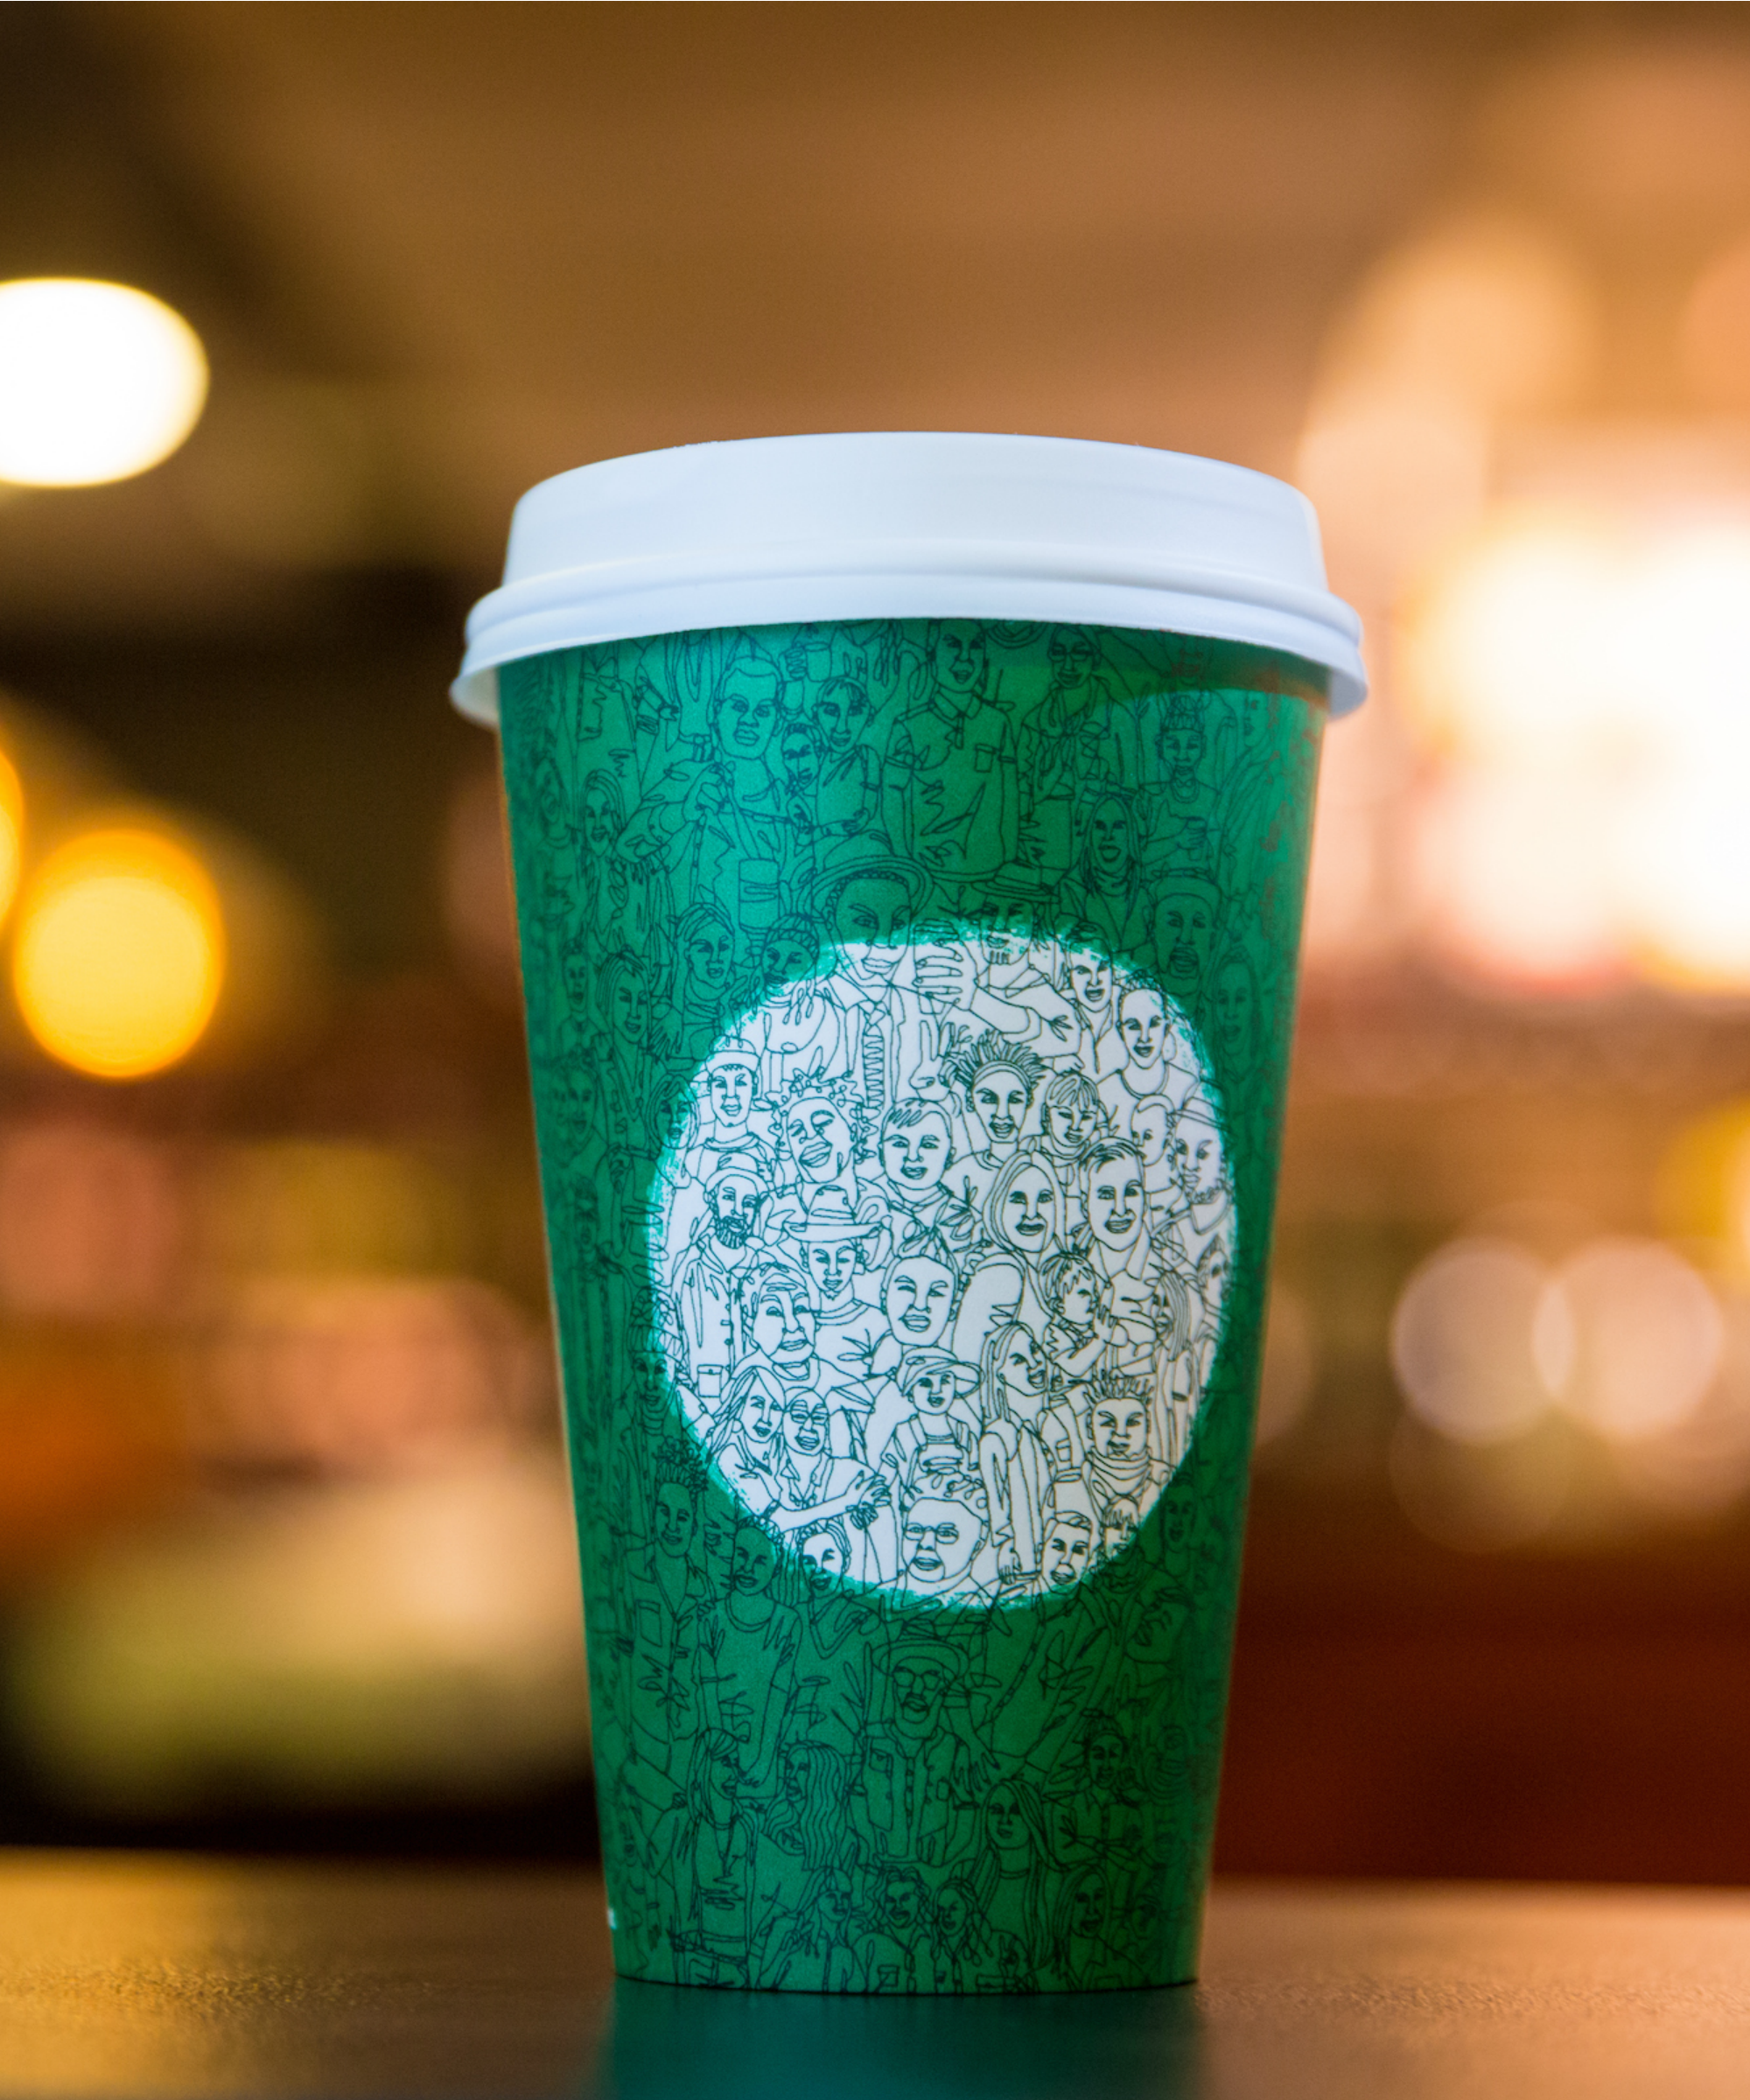 Stephen Colbert Starbucks Holiday Cup Controversy